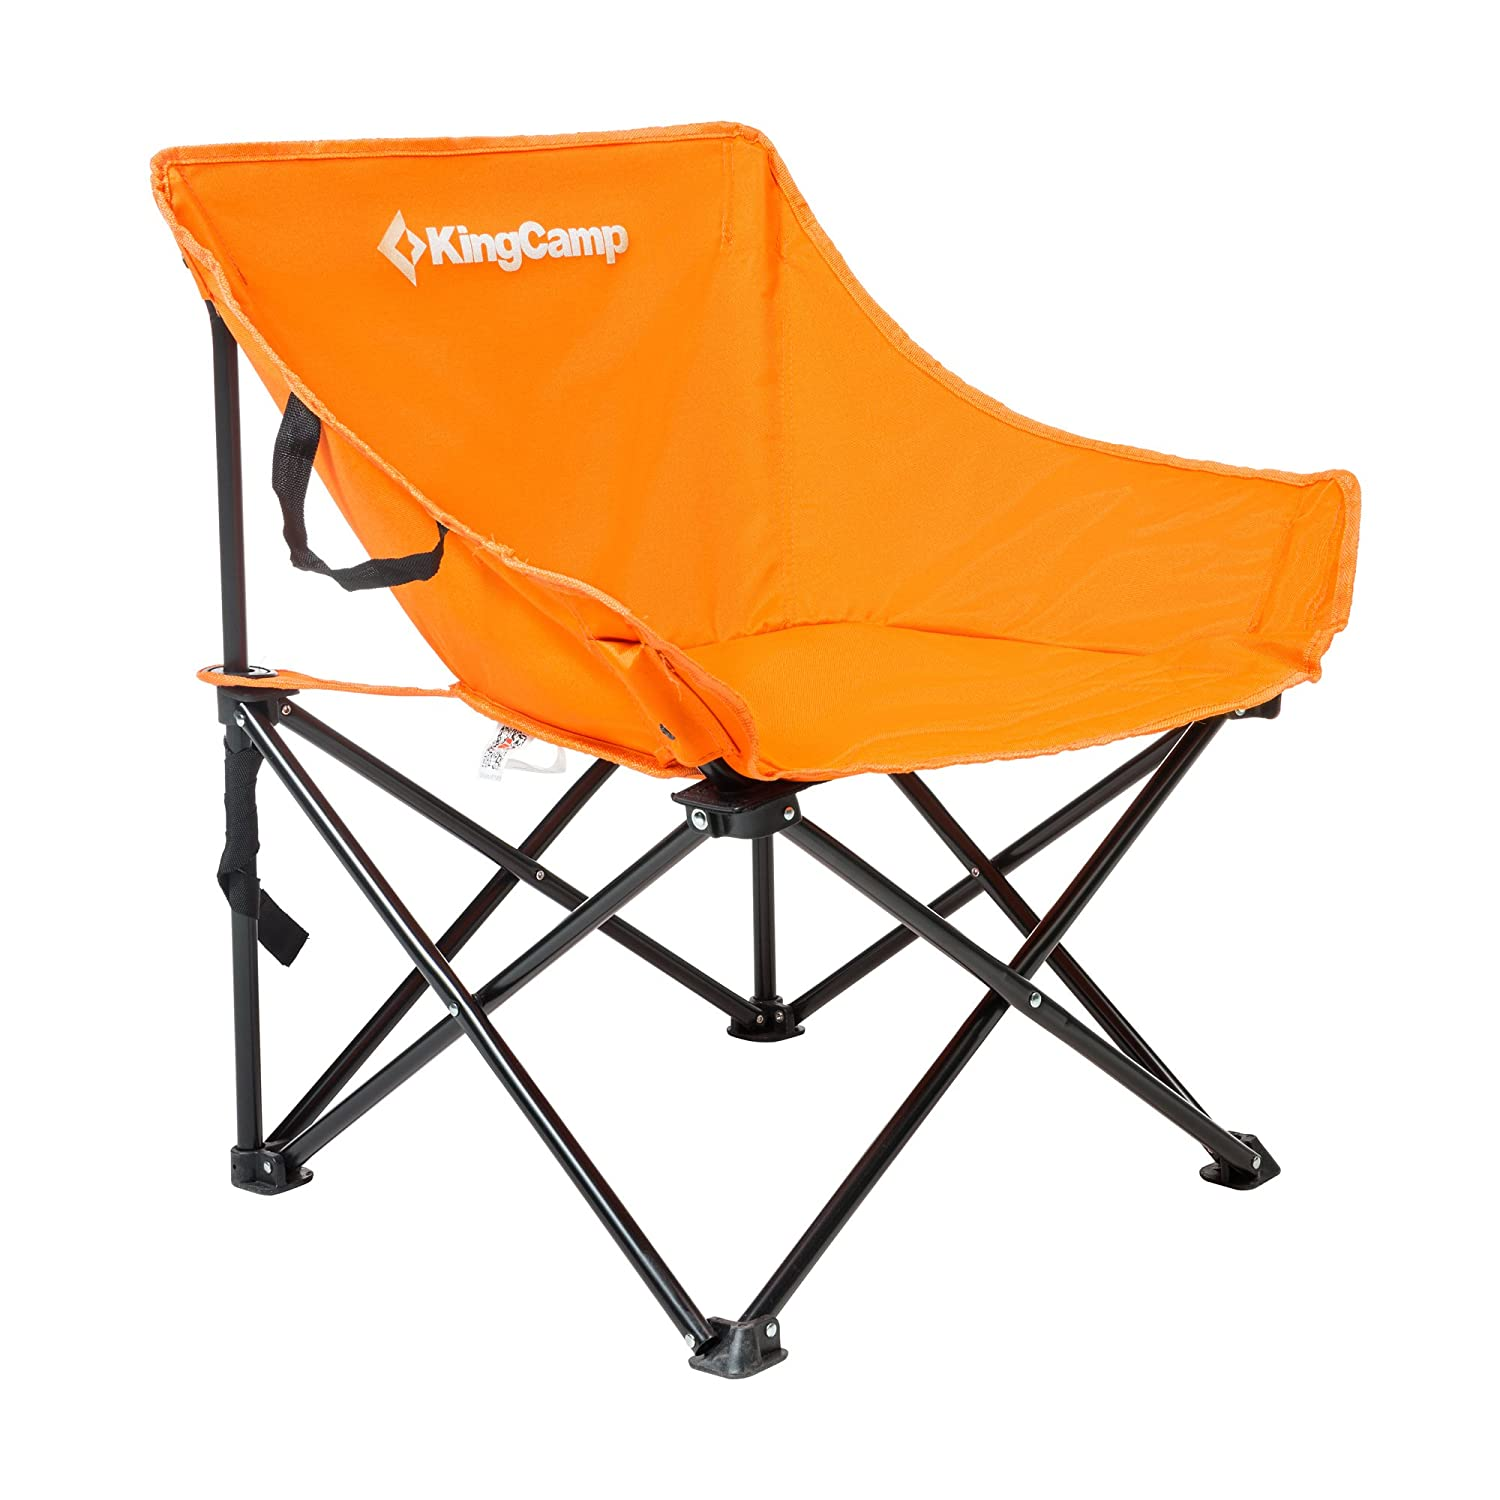 KingCamp Comfortable Protable Heavy Duty Steel Folding Chair with Handle